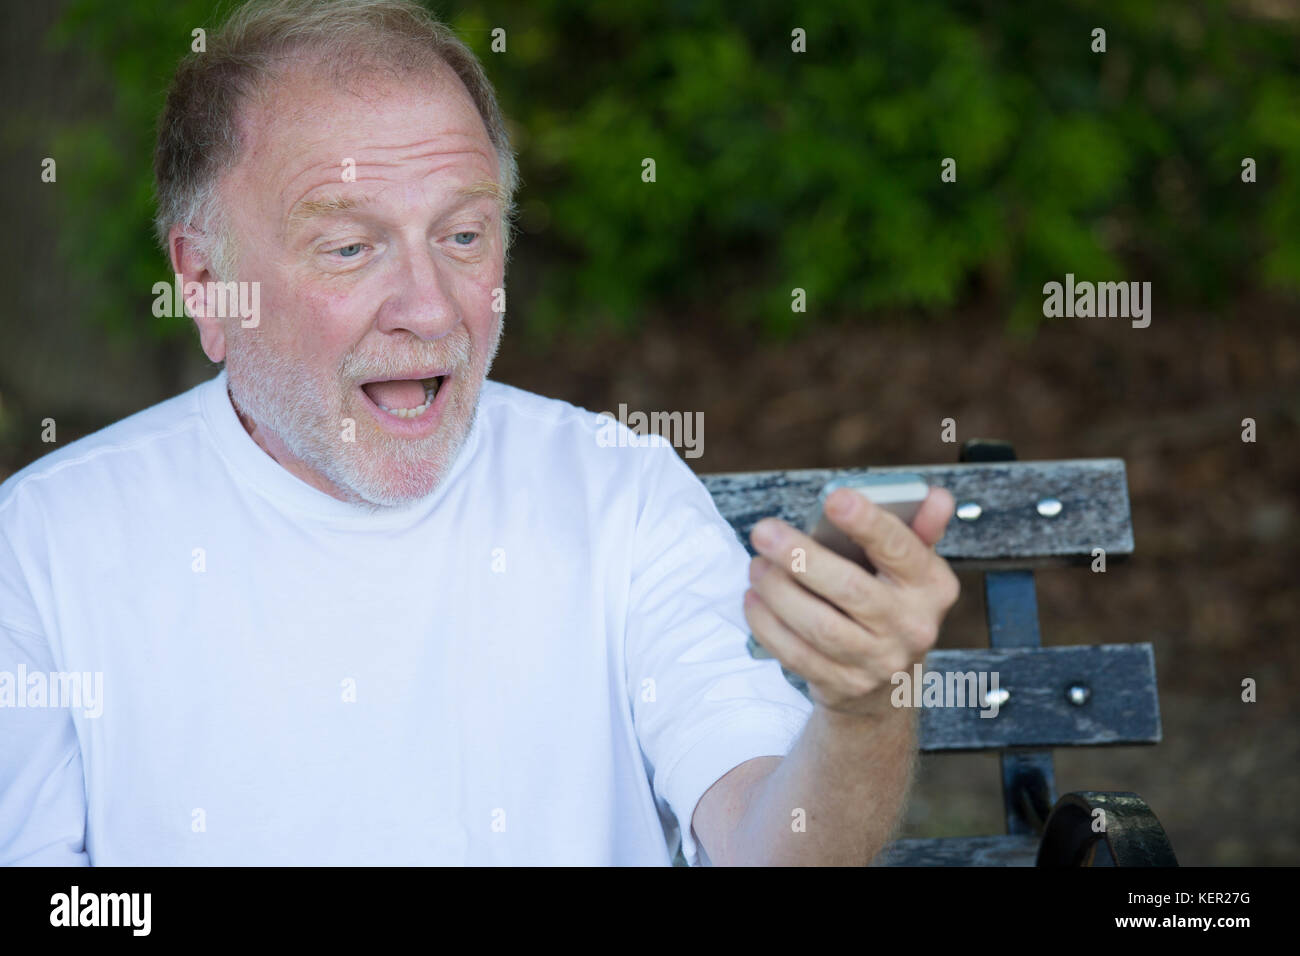 Closeup portrait of bold elderly man in white shirt, shocked at checking smartphone, sending text message, seated - Stock Image